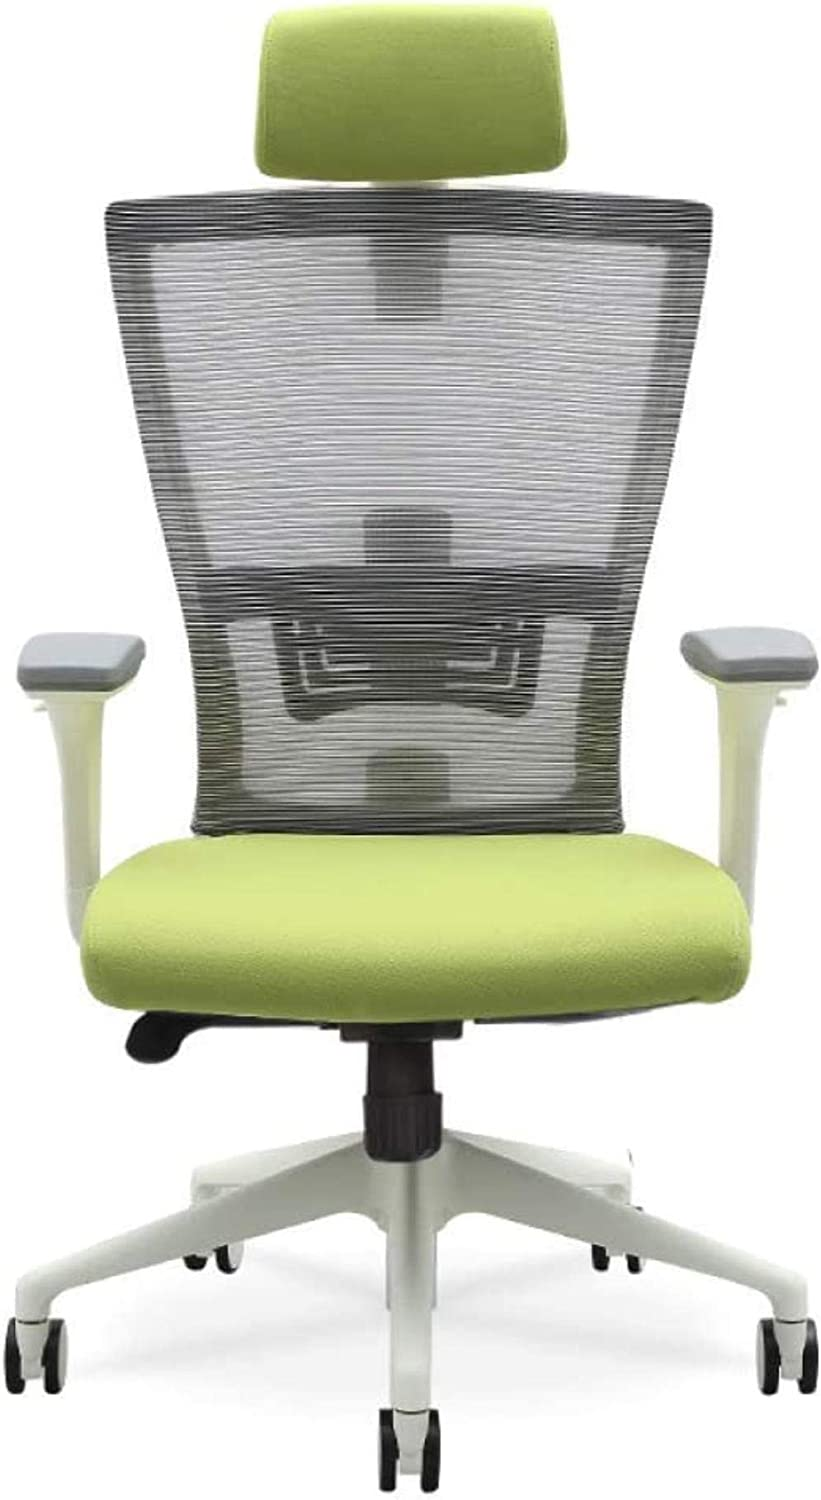 Attention brand Max 75% OFF LTHDD Ergonomic Chair Home Computer Rotatable Espor Office Lift